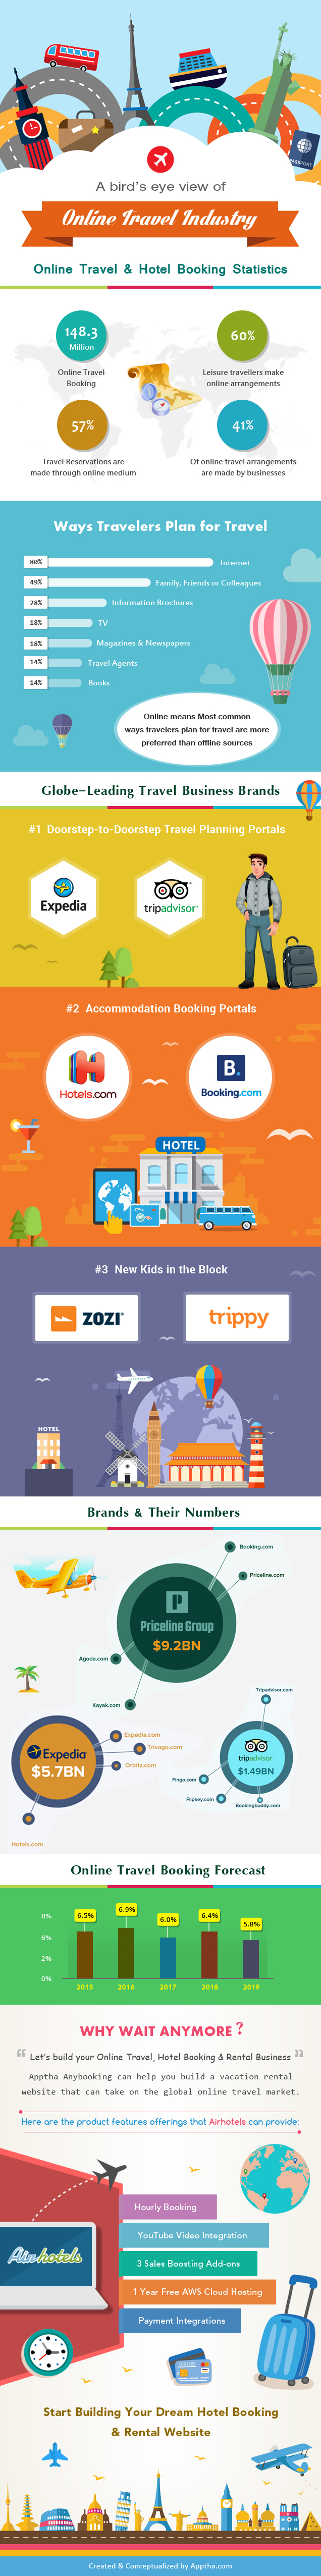 Online Travel Industry Infographic 2017